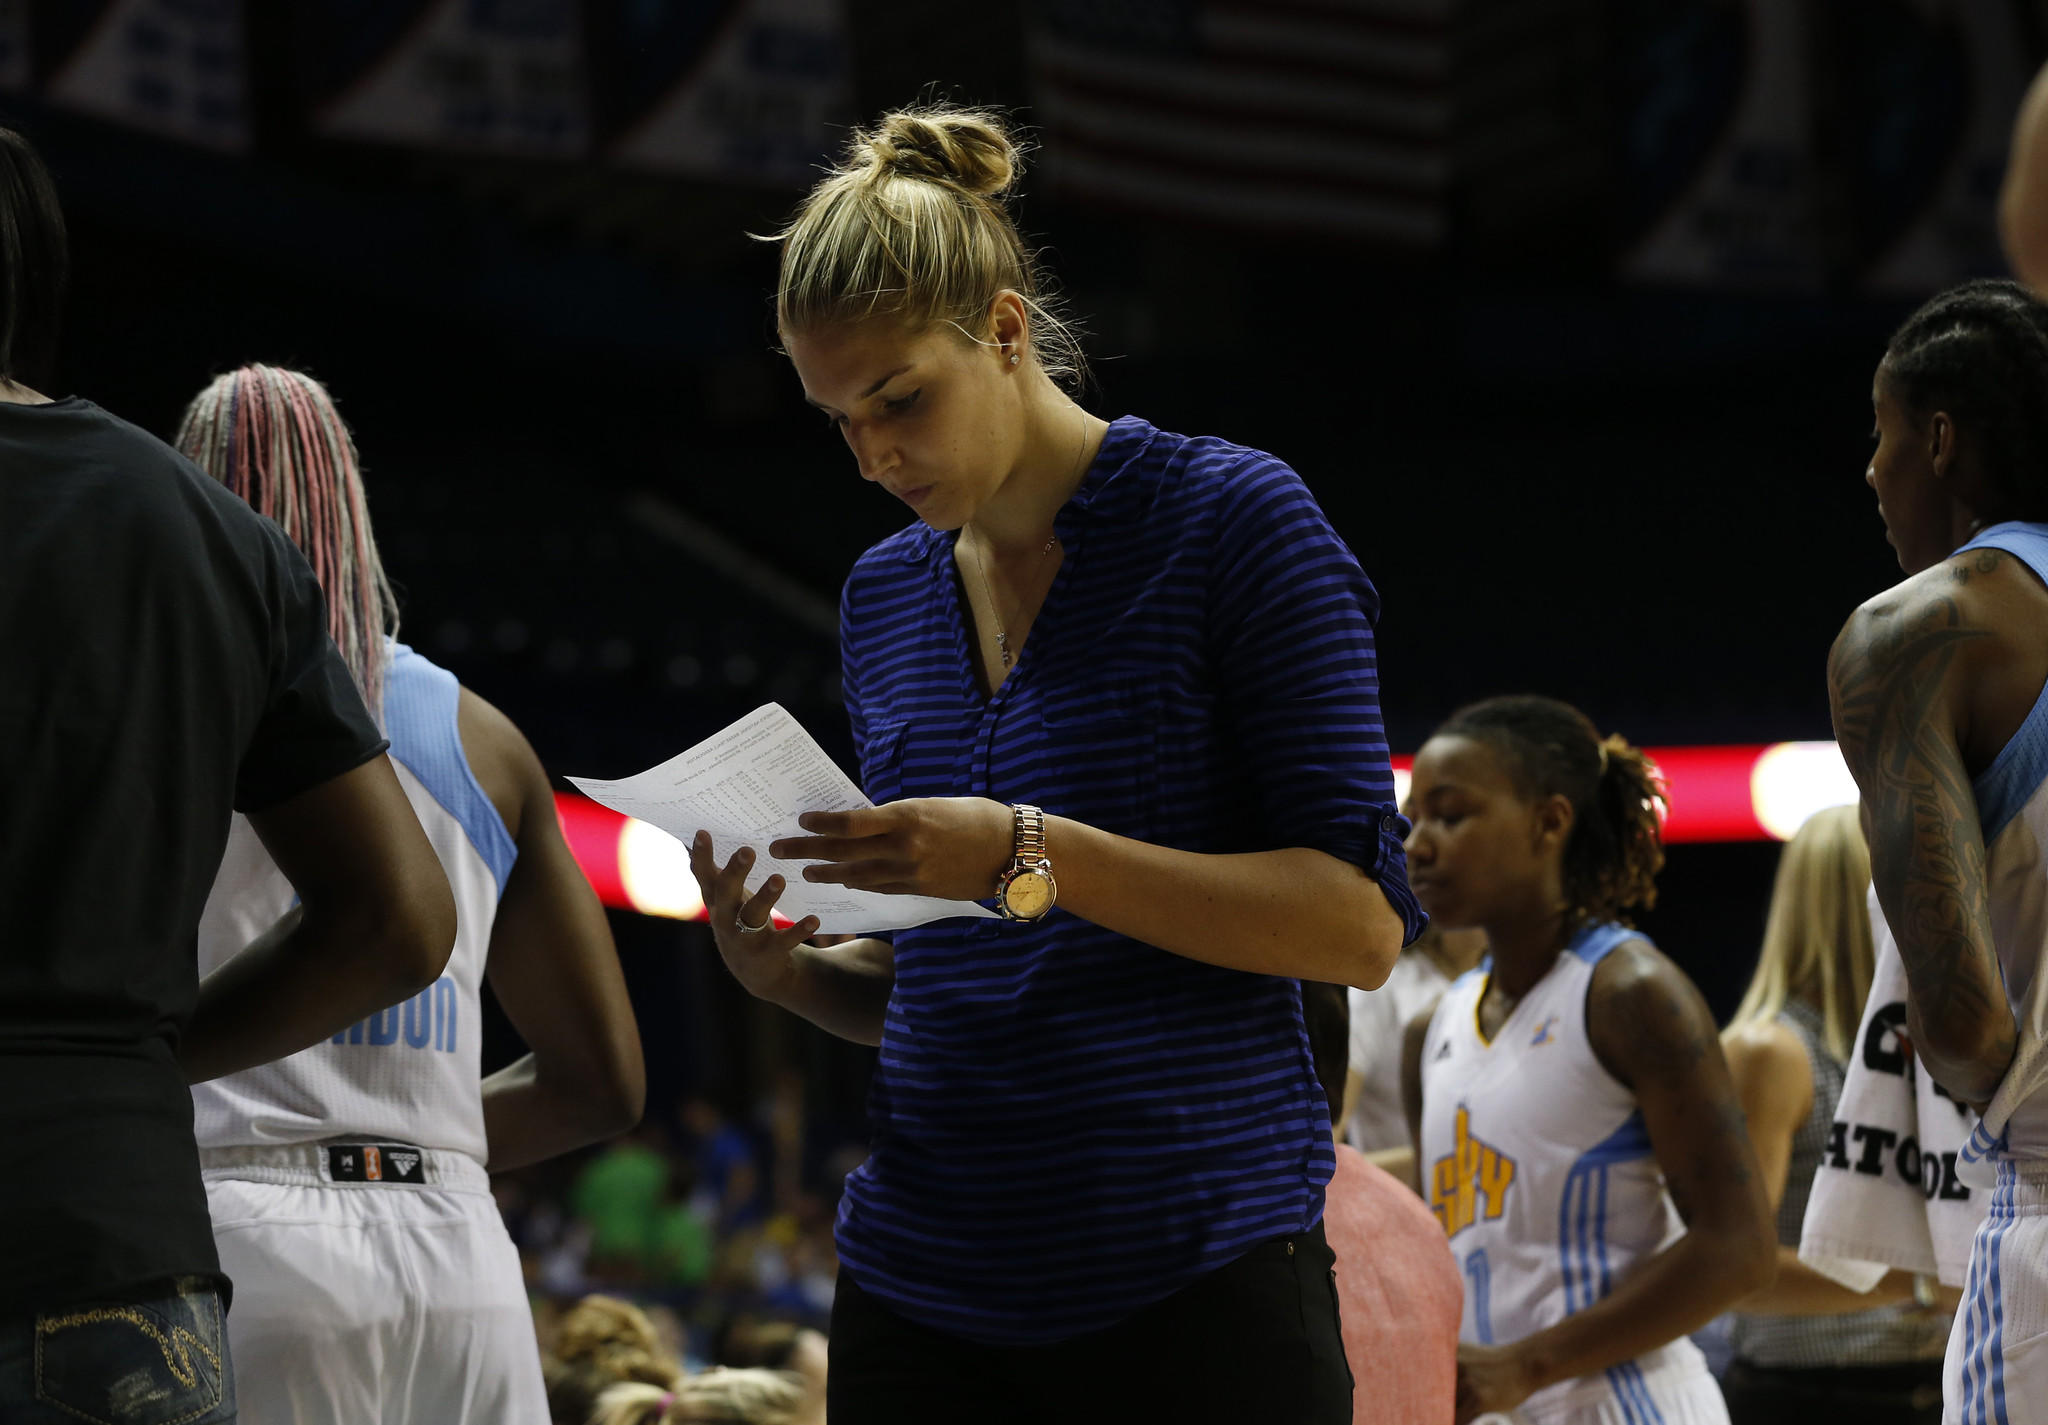 Chicago Sky's Elena Delle Donne sits out a game while suffering from Lyme Disease on June 18. E. Jason Wambsgans/Chicago Tribune)